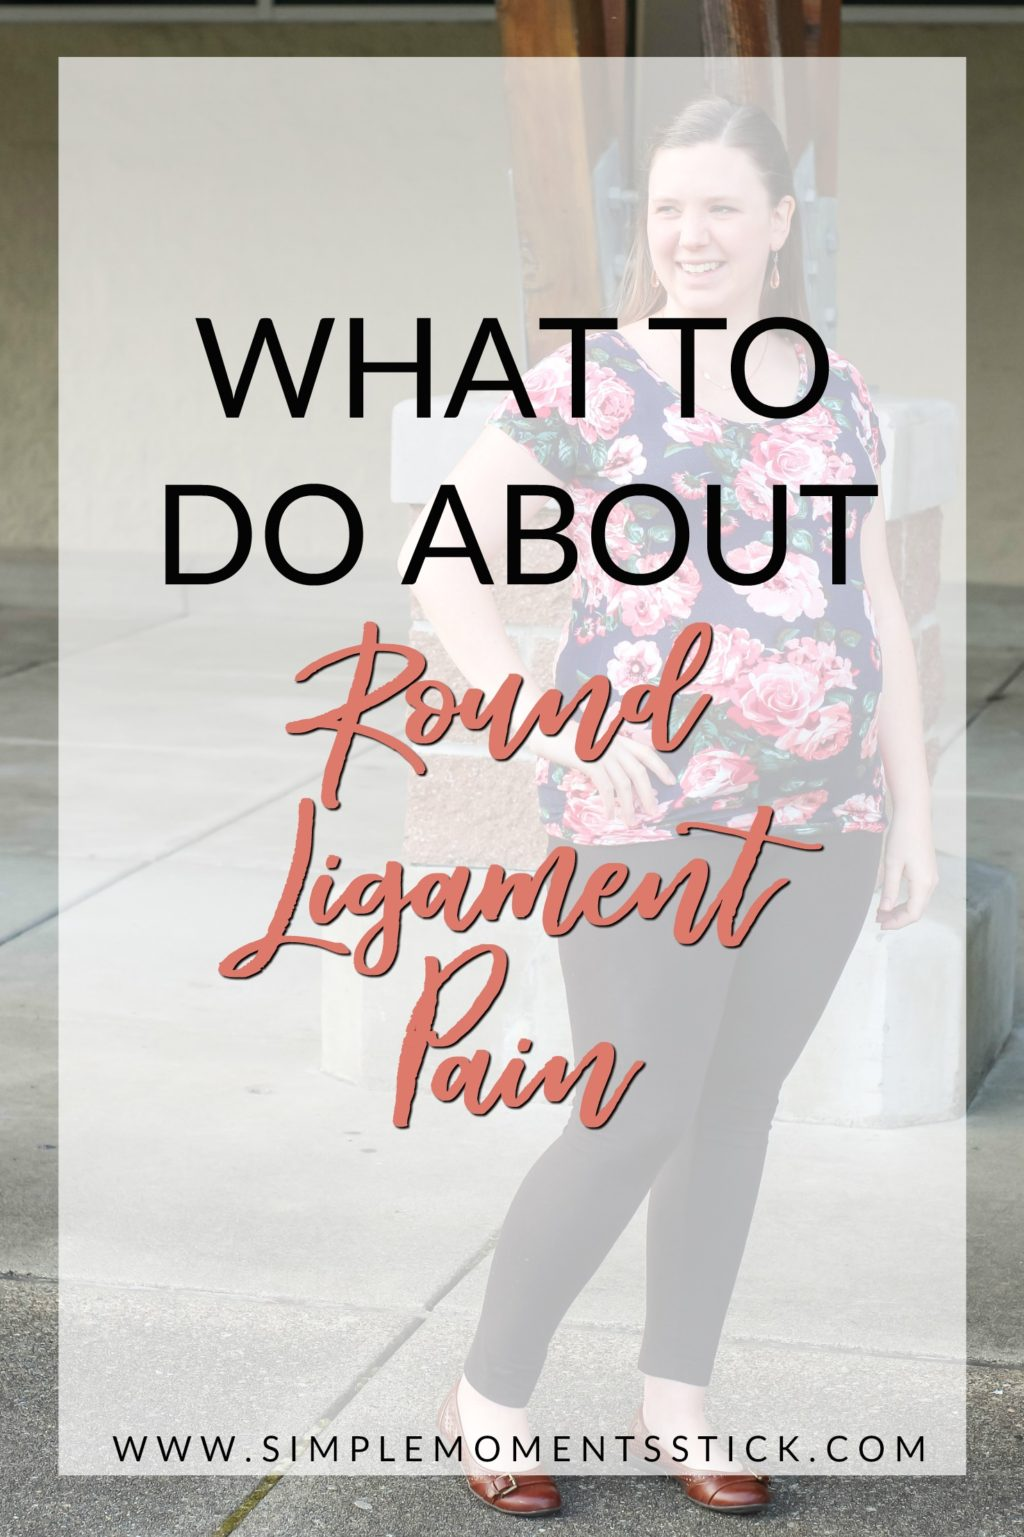 If you're wondering what helps round ligament pain, you're in luck! This post has tons of tips and tricks for dealing with round ligament pain and not letting it ruin your pregnancy.